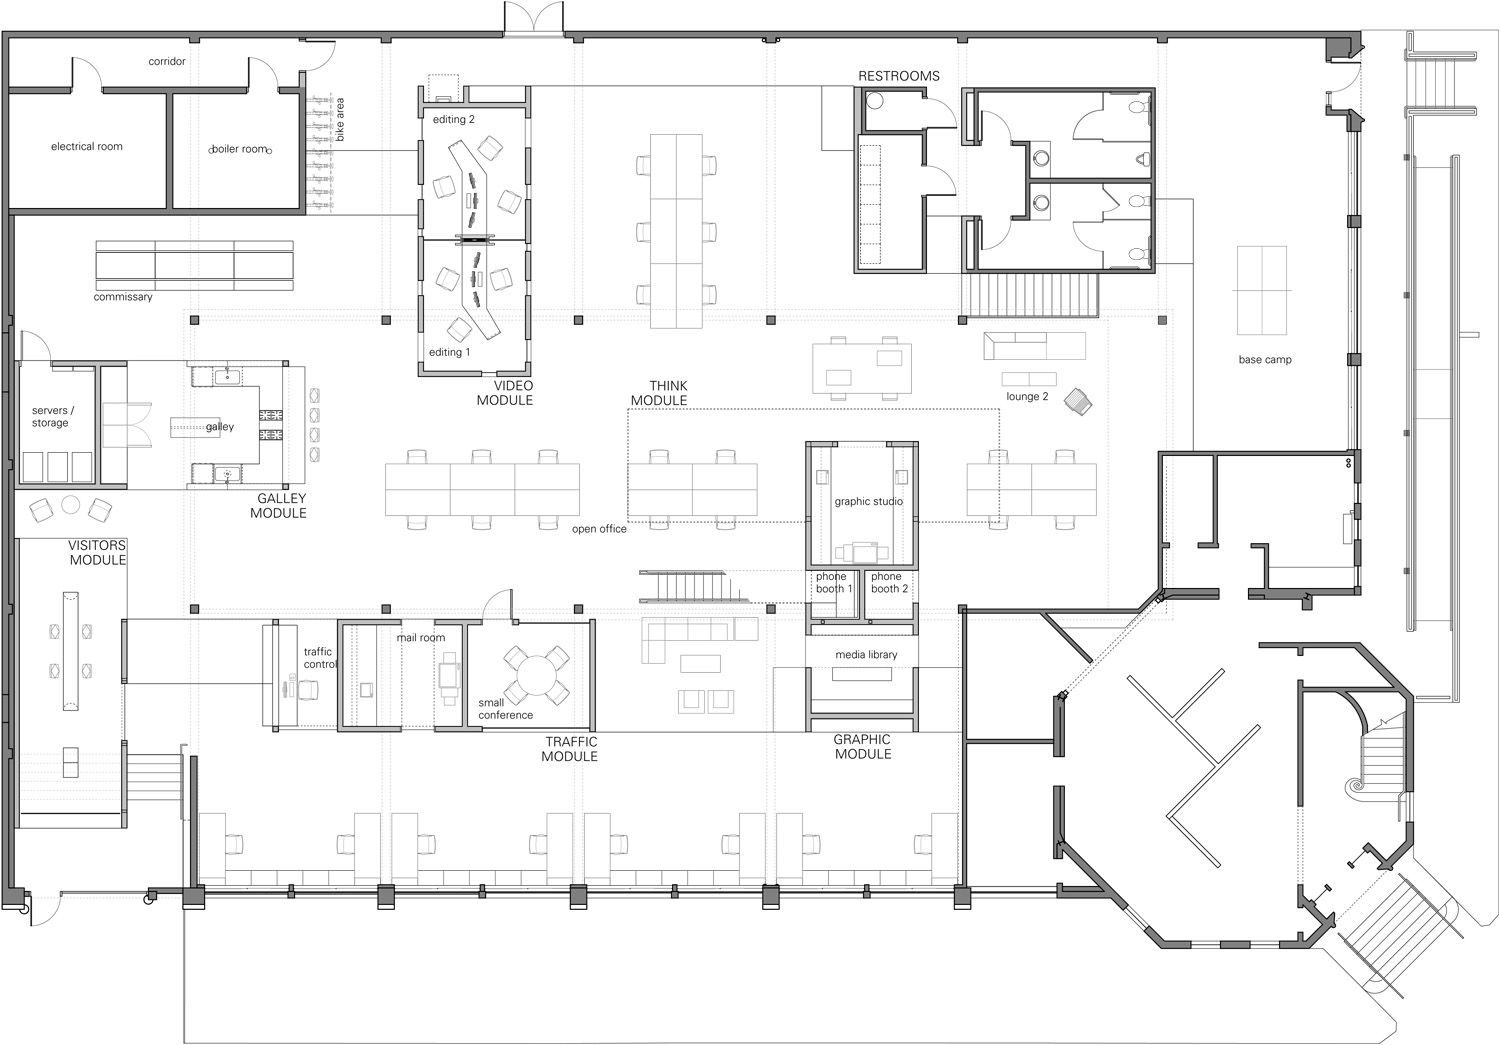 North skylab architecture office floor plan office Architectural floor plans